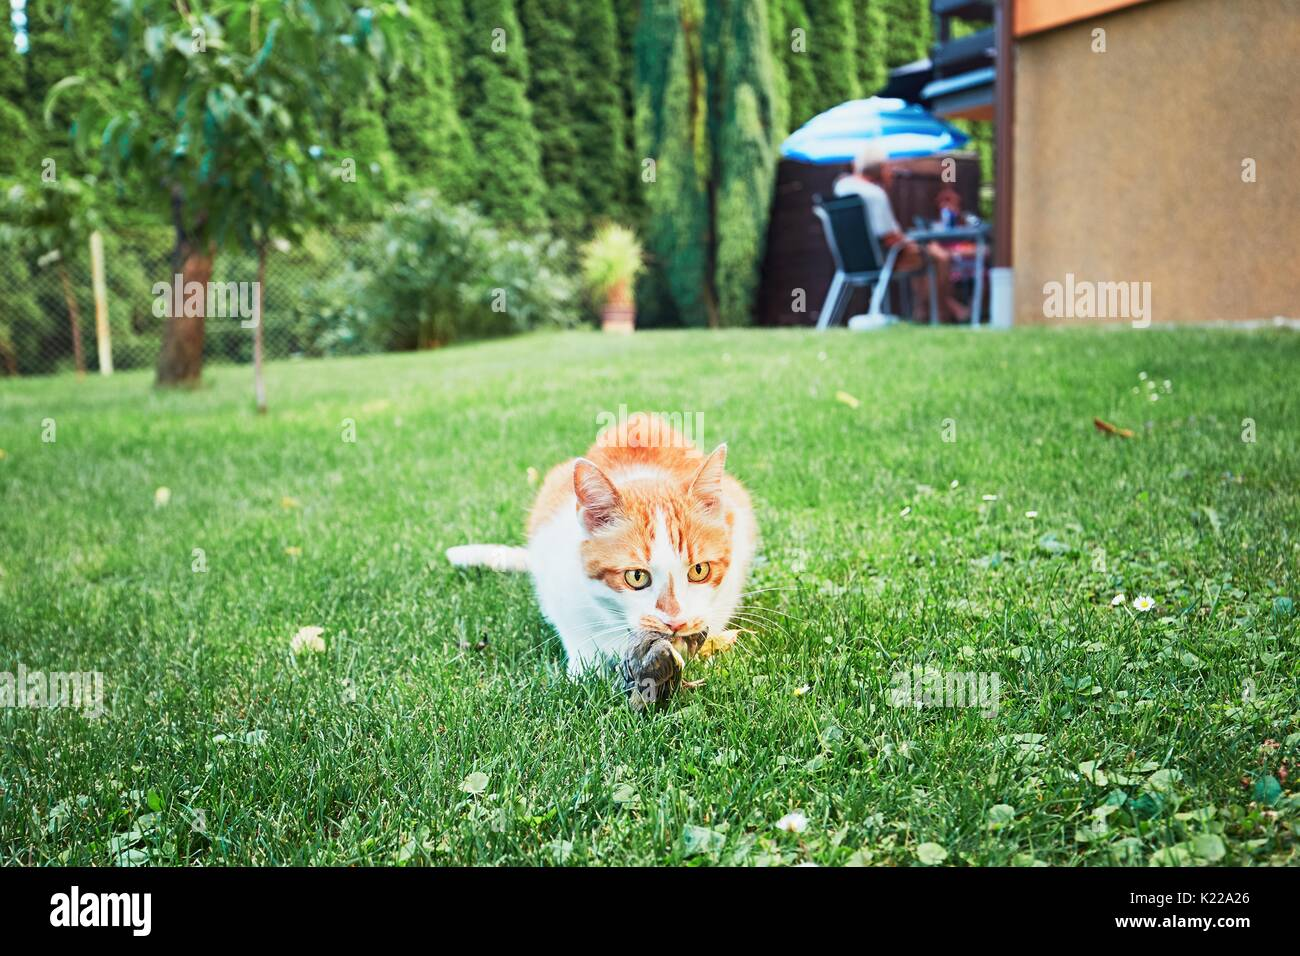 Ginger cat catch a bird on the garden of the family house. - Stock Image